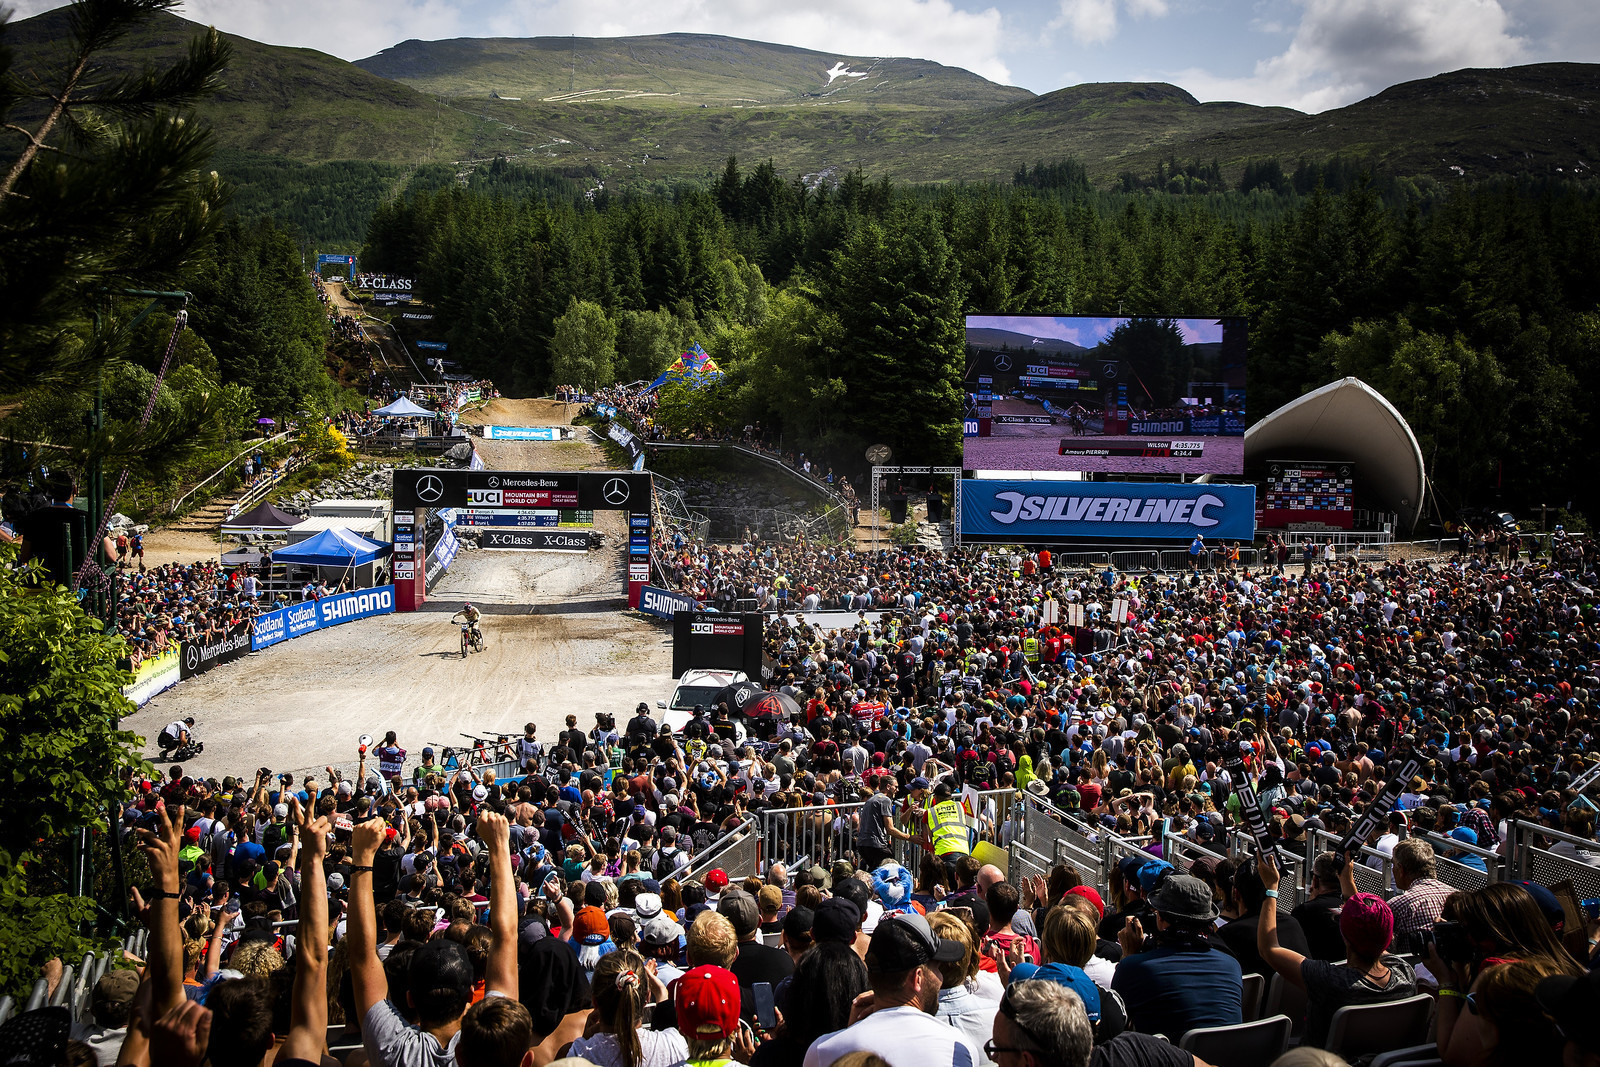 Fort William World Cup DH and its massive crowd. The spectators have flocked to the highlands for years to watch great racing.